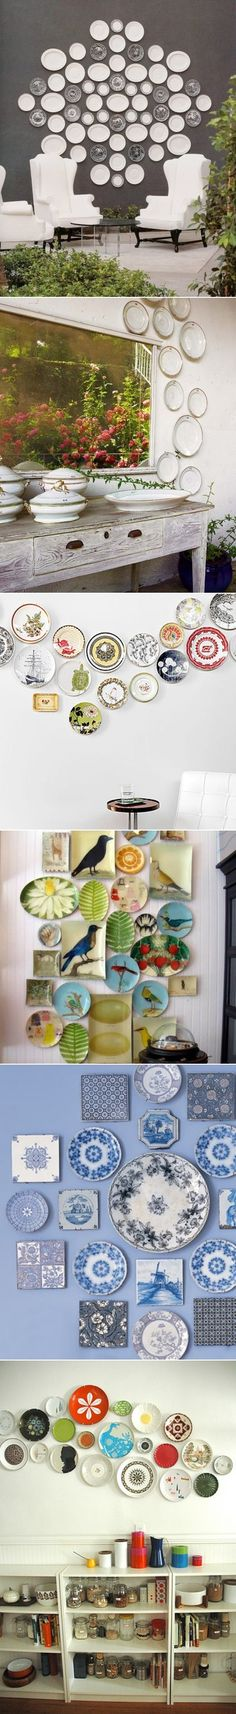 DIY Plates Wall Collage - for all the plates, spoon rests, etc. I've collected over the past years... After all, some artist designed the pattern(s)...